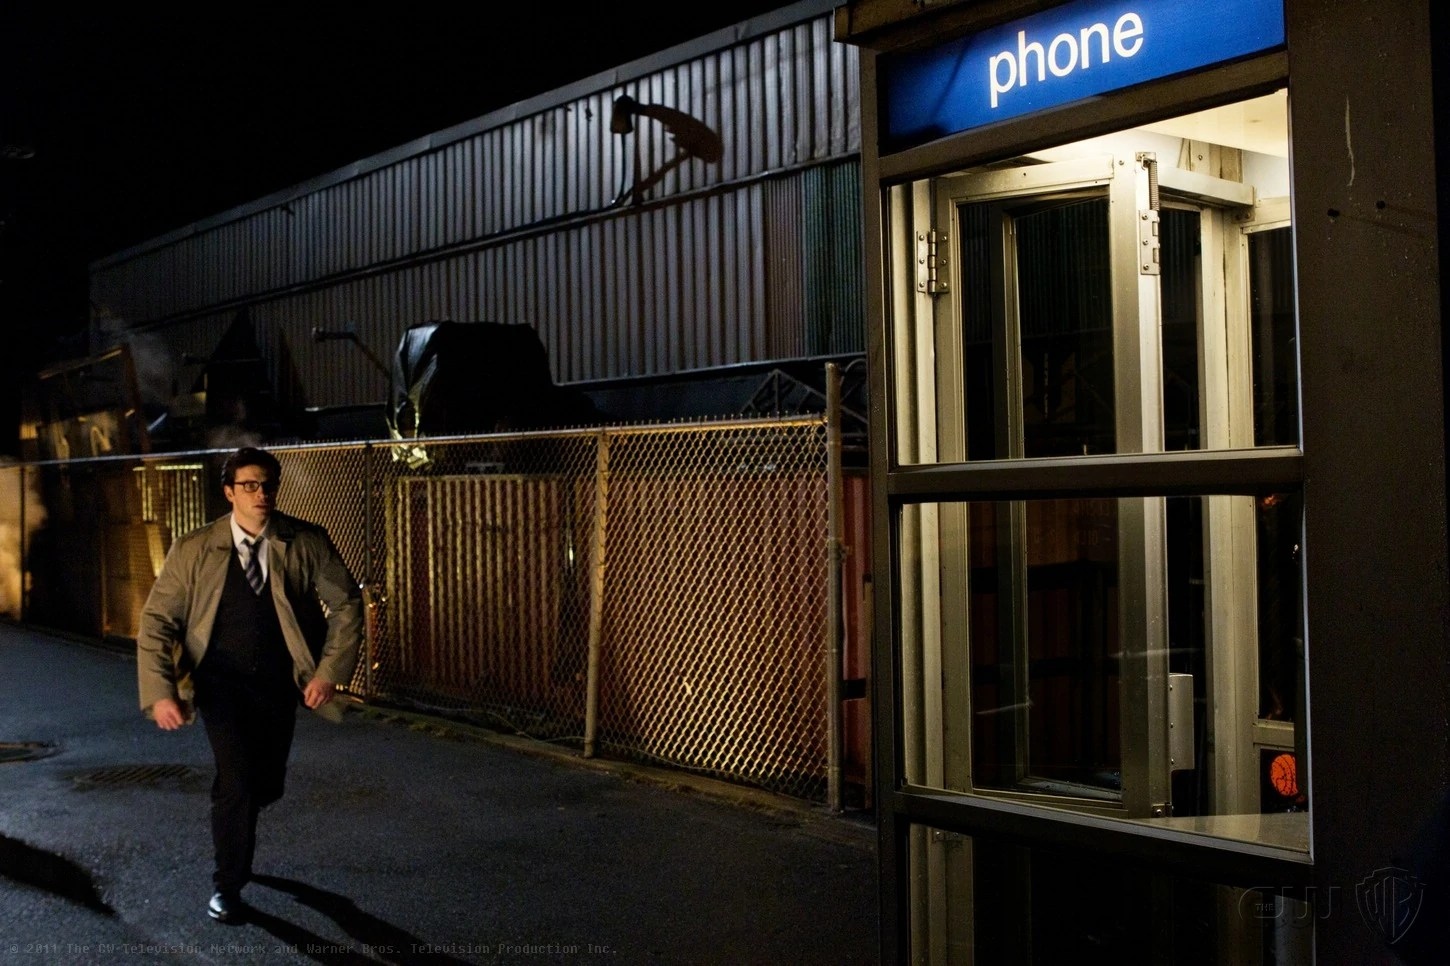 The Fall Tv Series Wallpaper Phone Booth Smallville Wiki Wikia